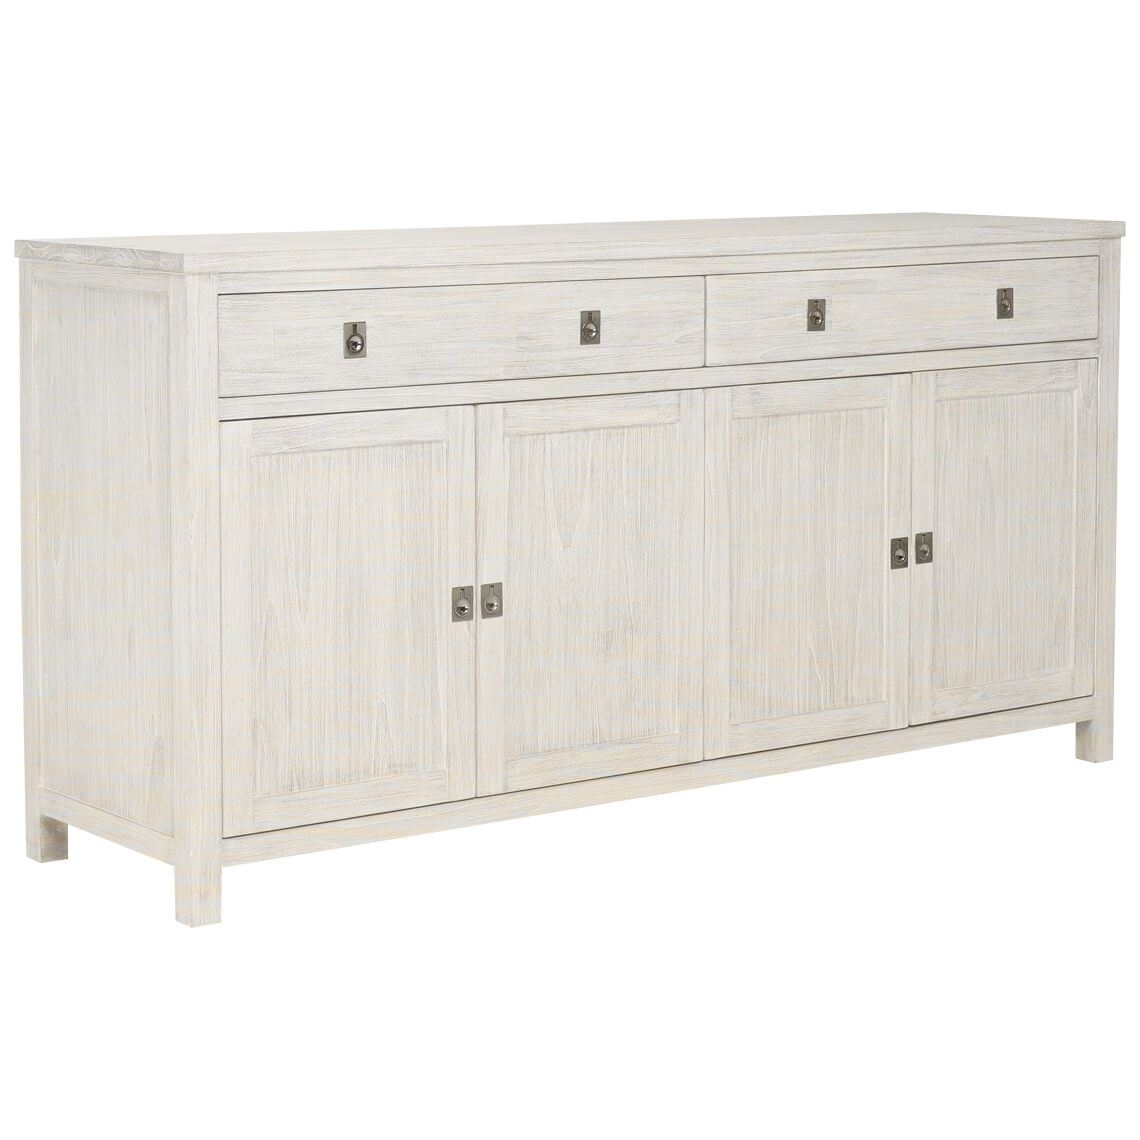 Cancun Buffet | Freedom Throughout 4 Door 3 Drawer White Wash Sideboards (View 11 of 30)